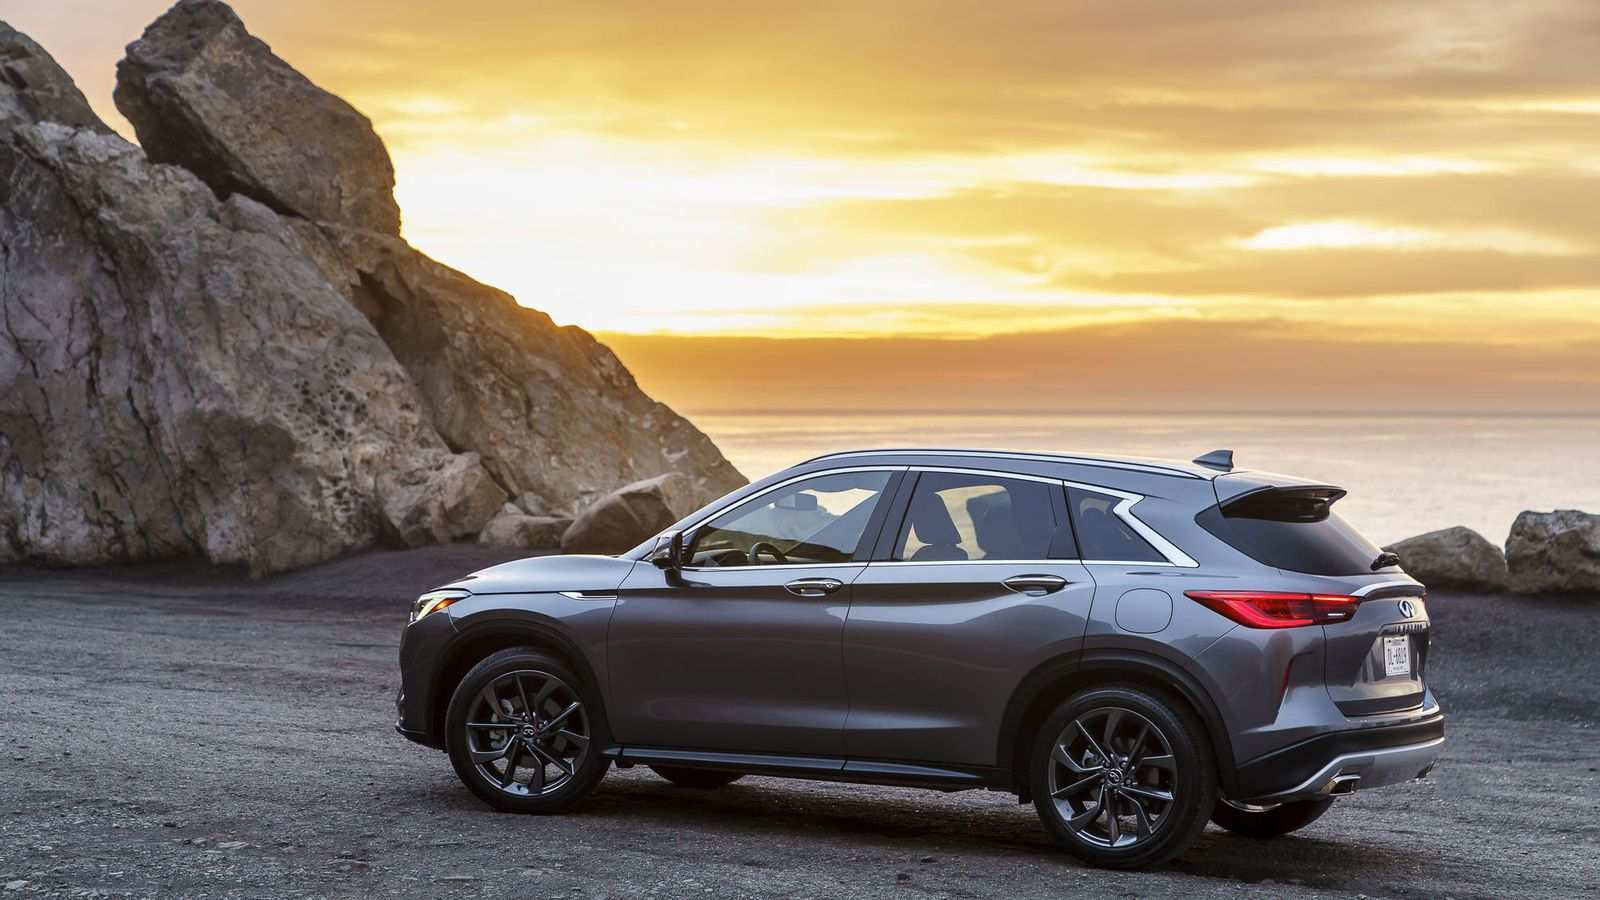 98 The 2019 Infiniti QX50 Release Date And Concept